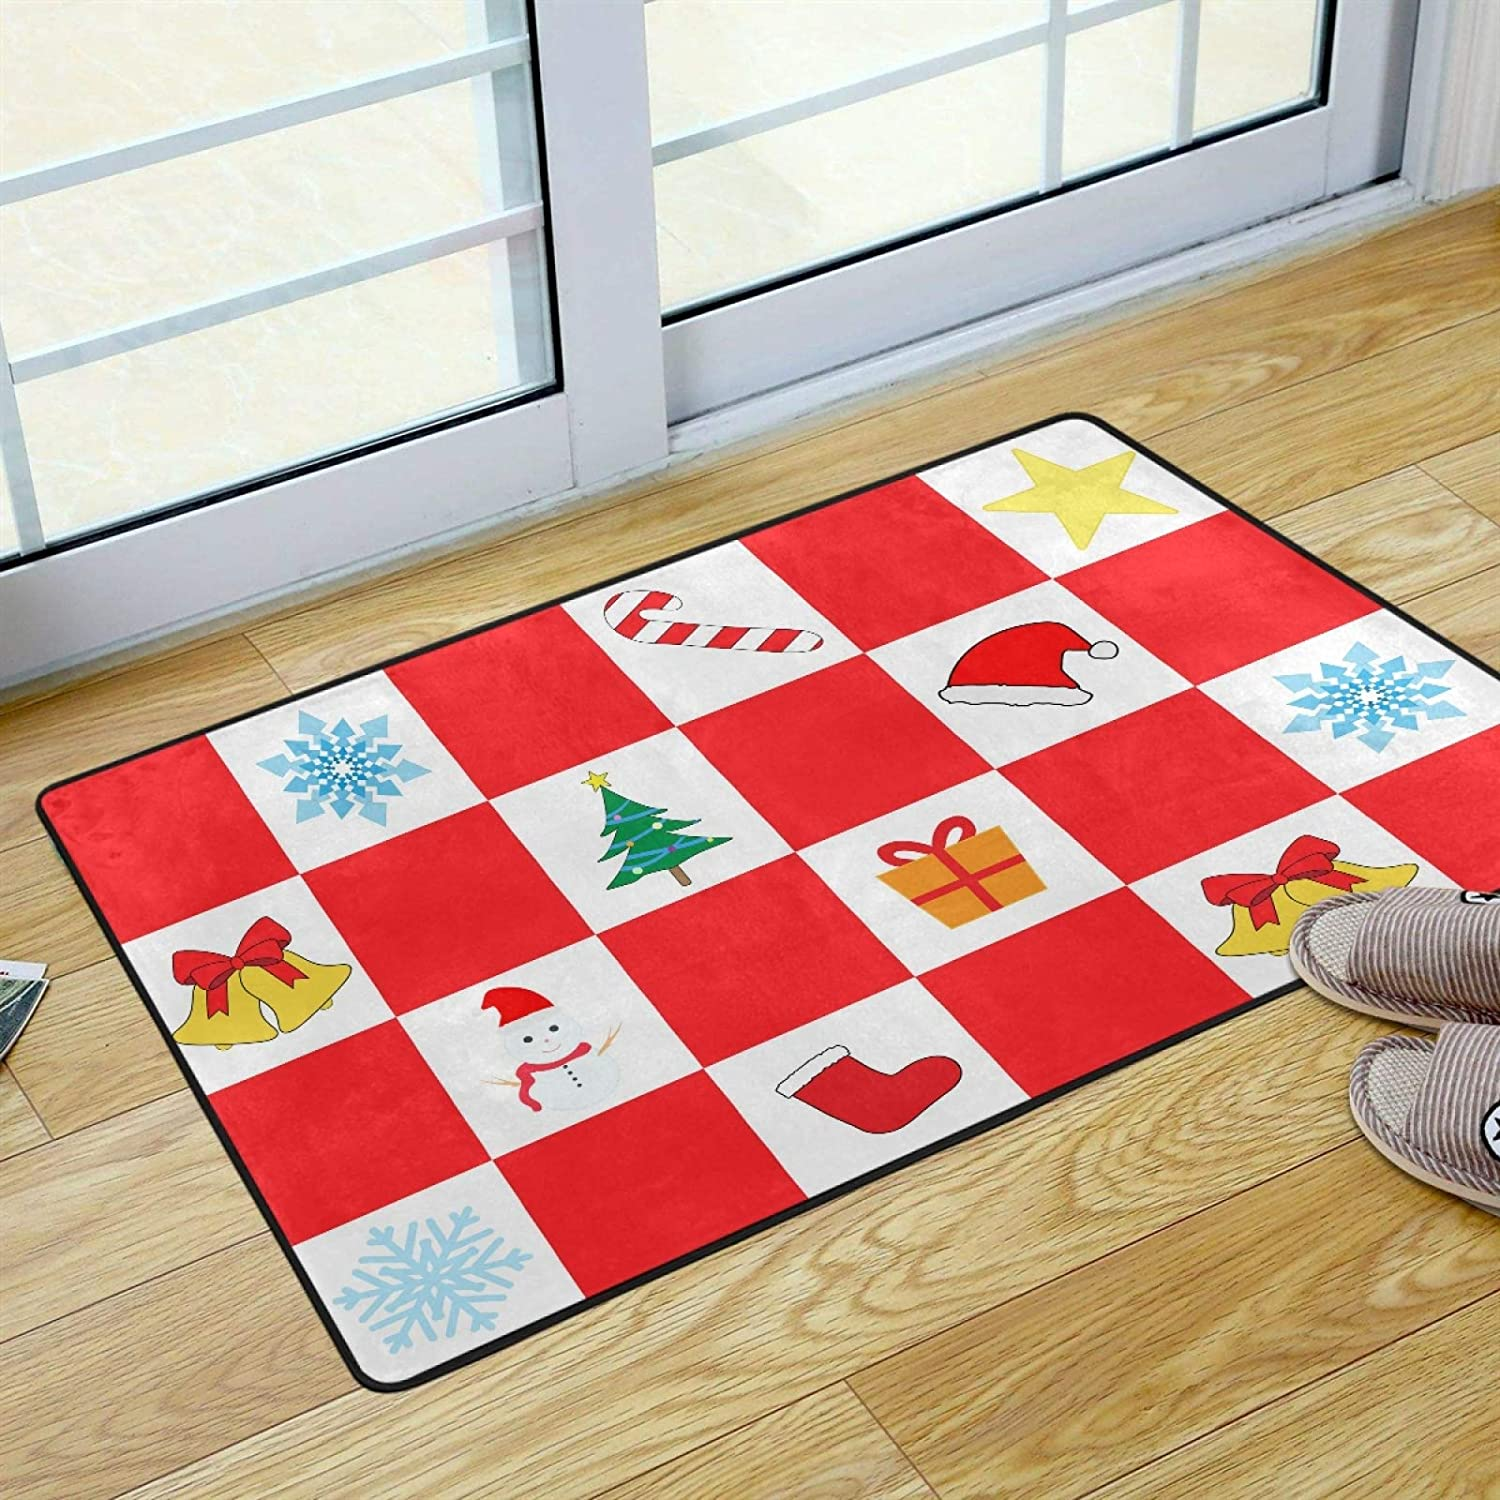 UMIRIKO Area Rug for Bathroom Merry Christmas Trees Snowflake Red Buffalo Check Plaid Indoor Door Mat Washable Rug for Bedroom Kitchen Porch Laundry Living Room Carpet 36 x 24 in 2021060